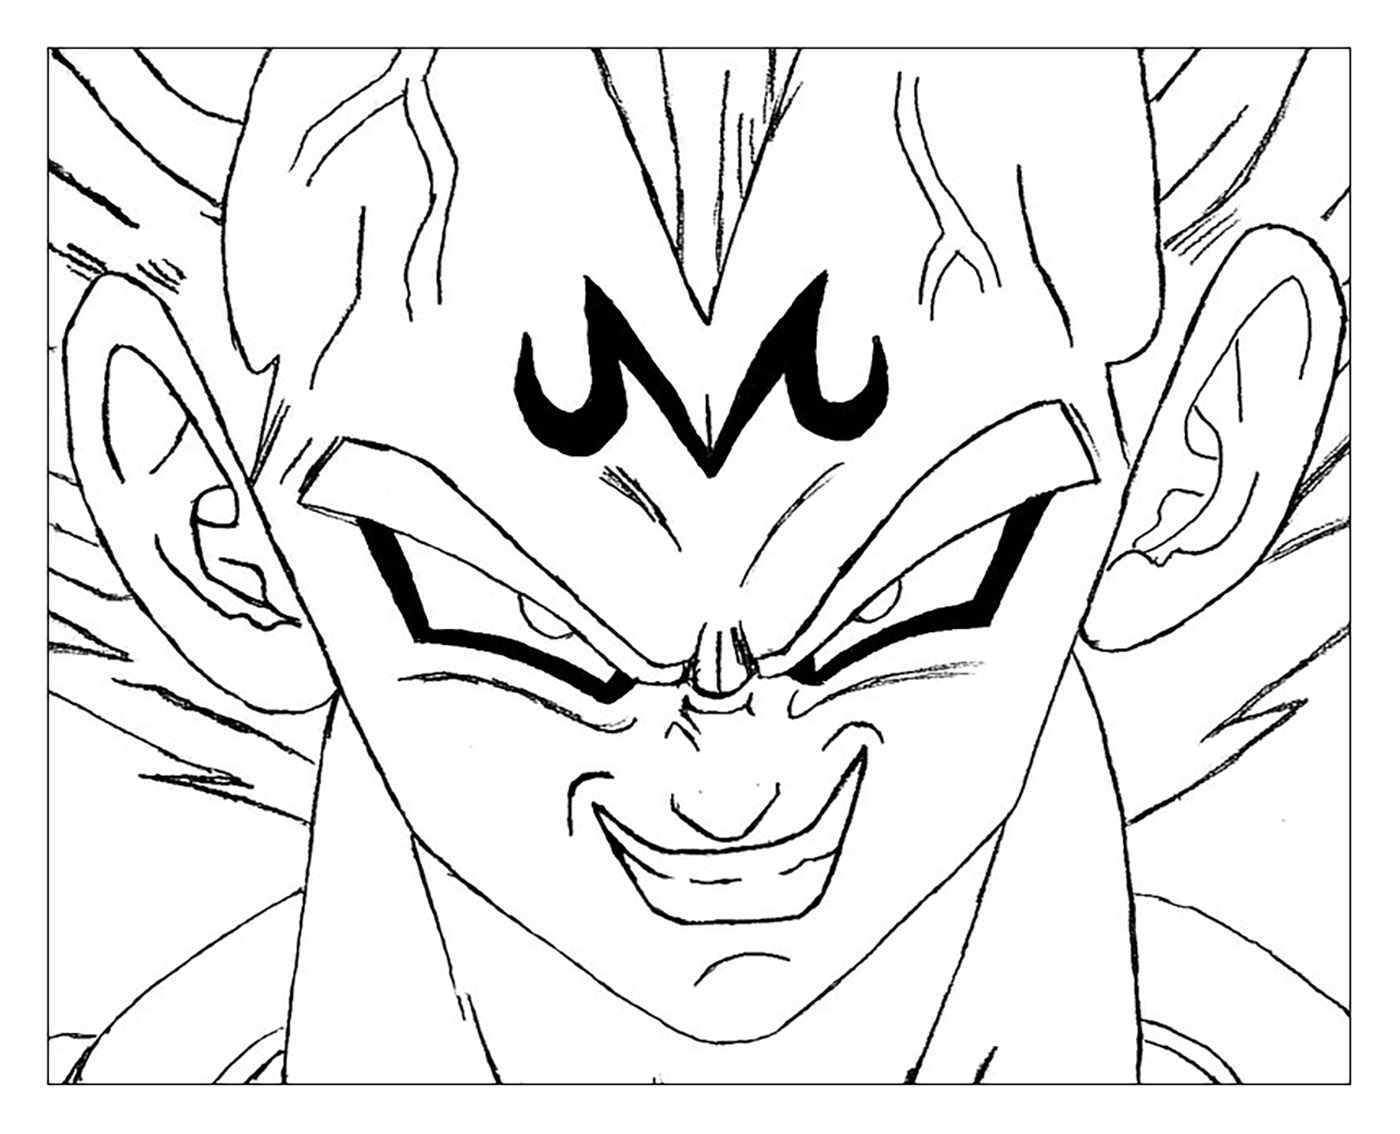 Facile dragon ball majin vegeta coloriage dragon ball z coloriages pour enfants - Dessin de dragon ball super ...